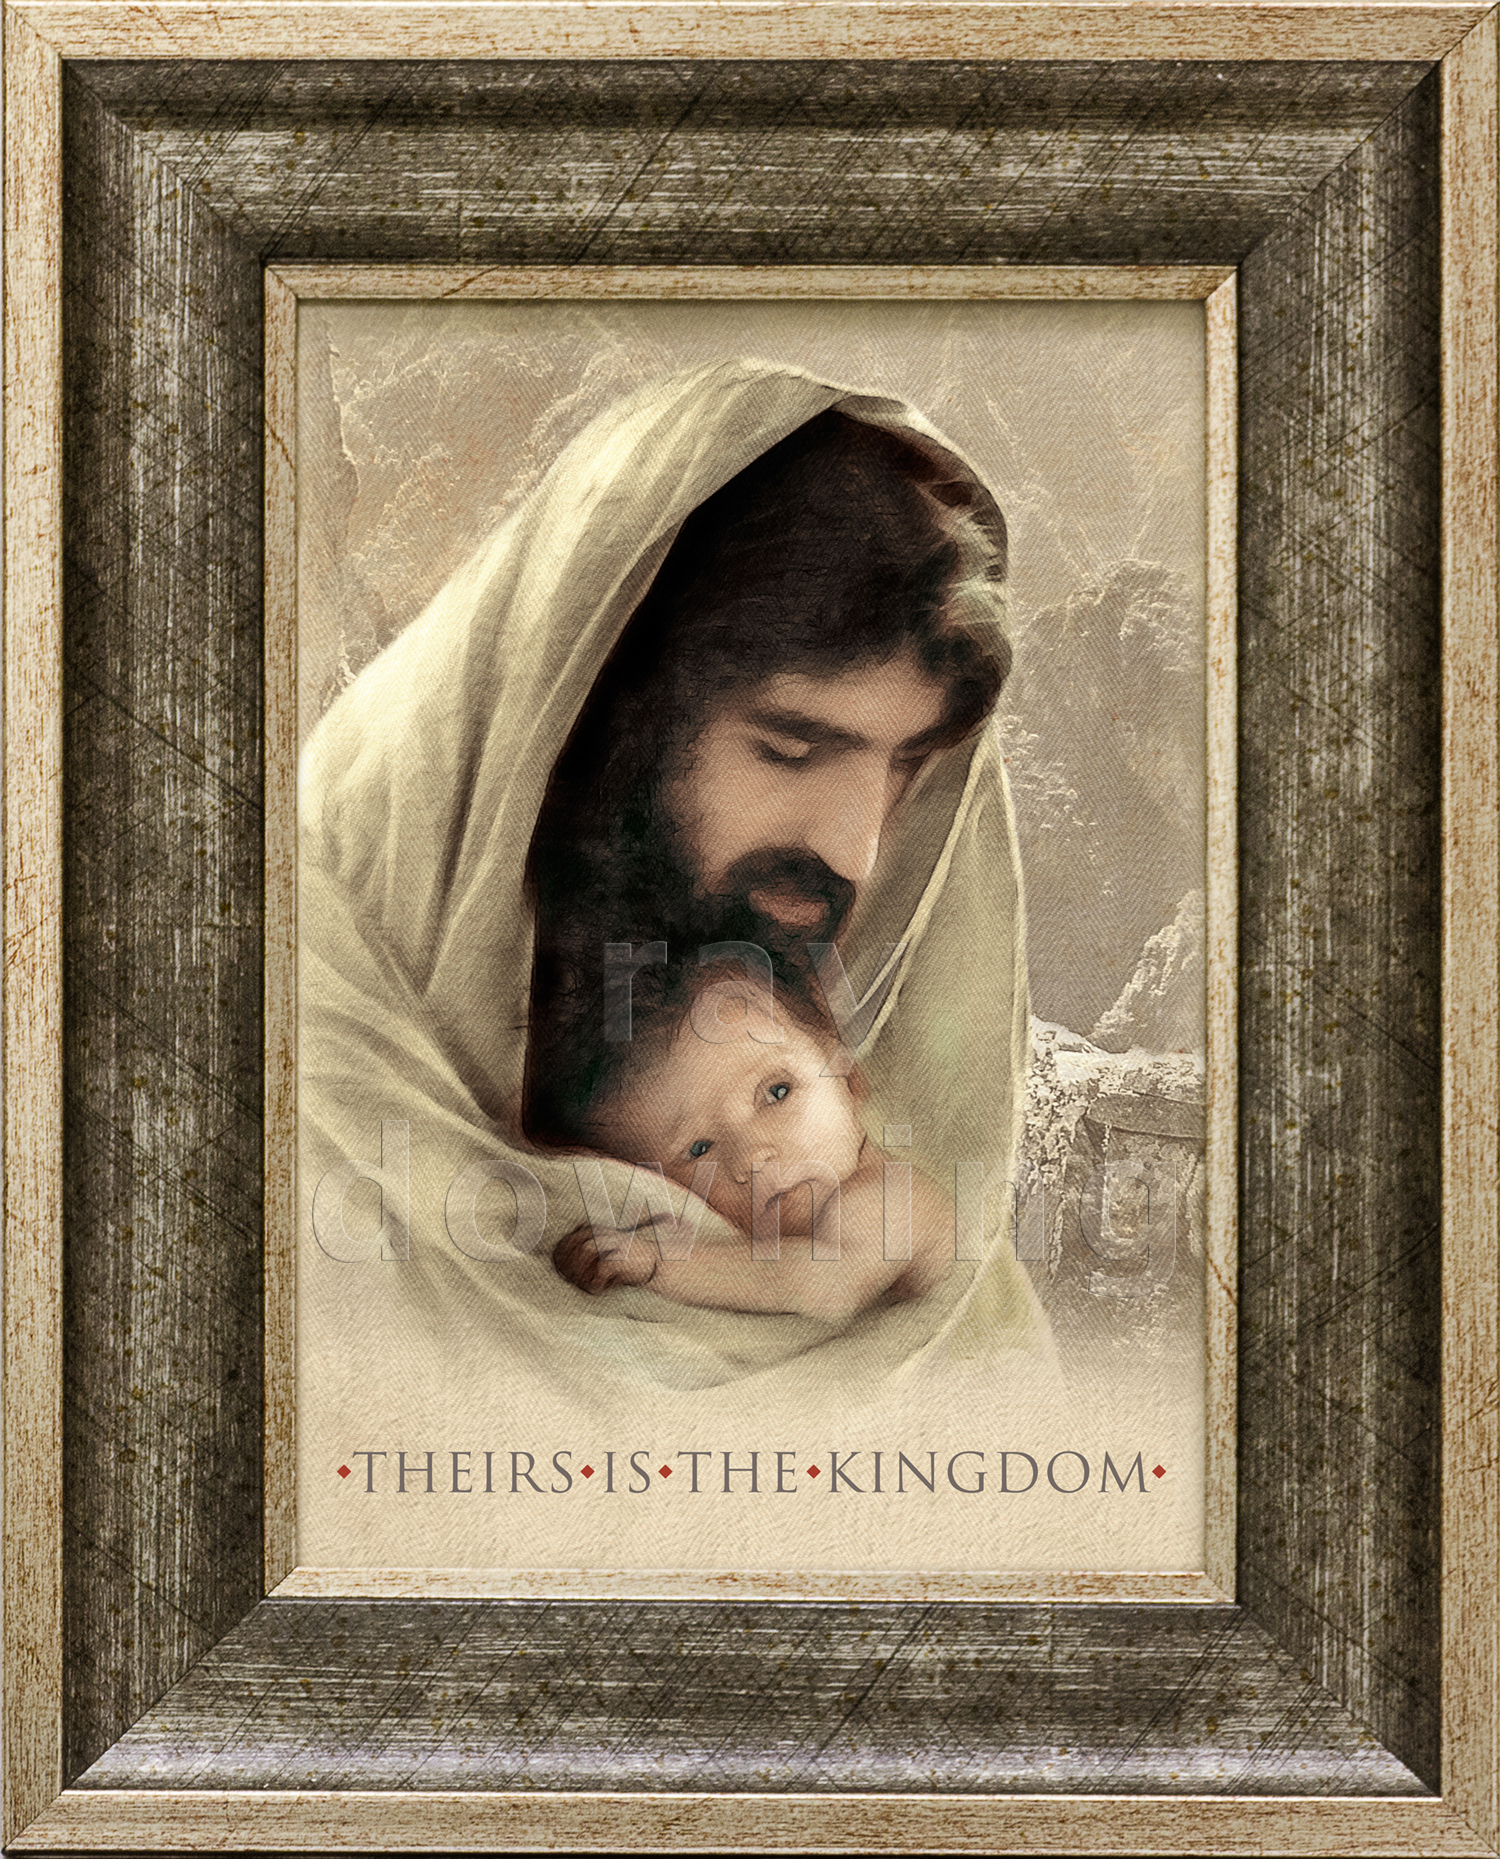 Picture of Jesus Holding a Baby.jpg